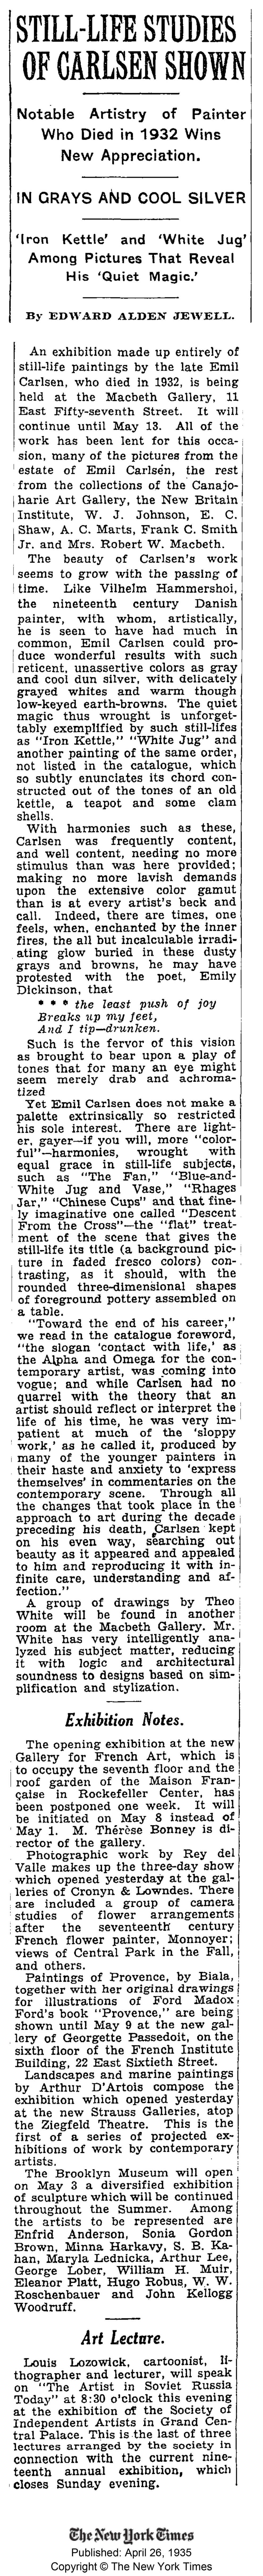 "The New York Times, New York, NY, ""Still-Life Studies Of Carlsen Shown"" by Edward Alden Jewell, April 26, 1935"